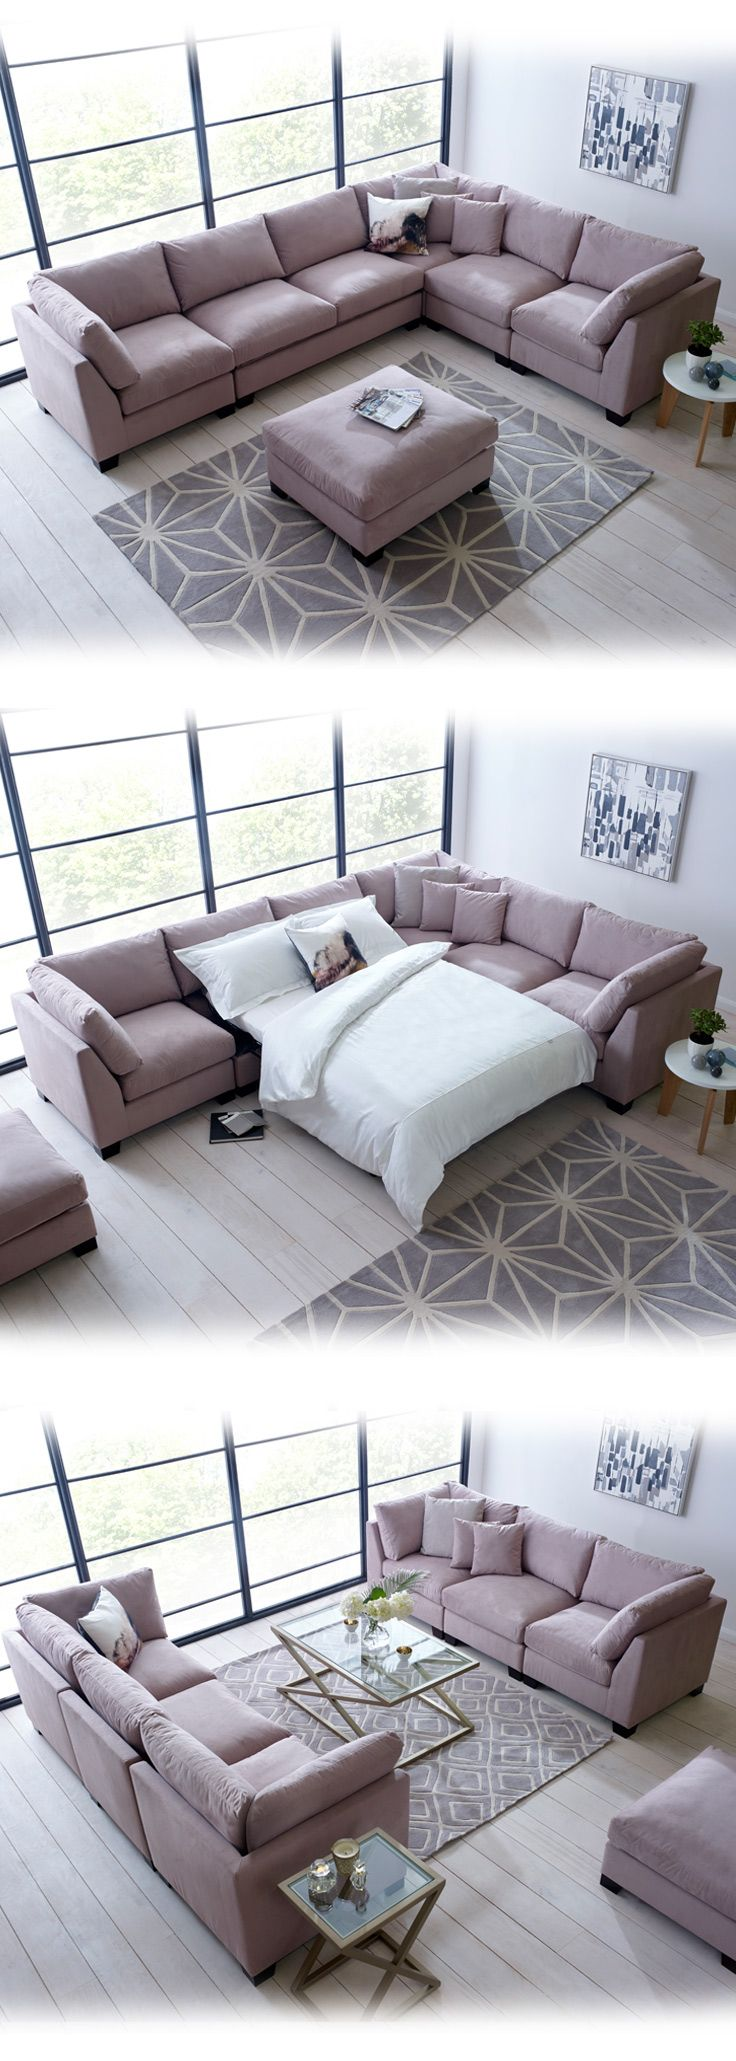 The Isabelle Corner Sofa Bed Is Perfect For Unique Spaces. A Comfortable,  Spacious And